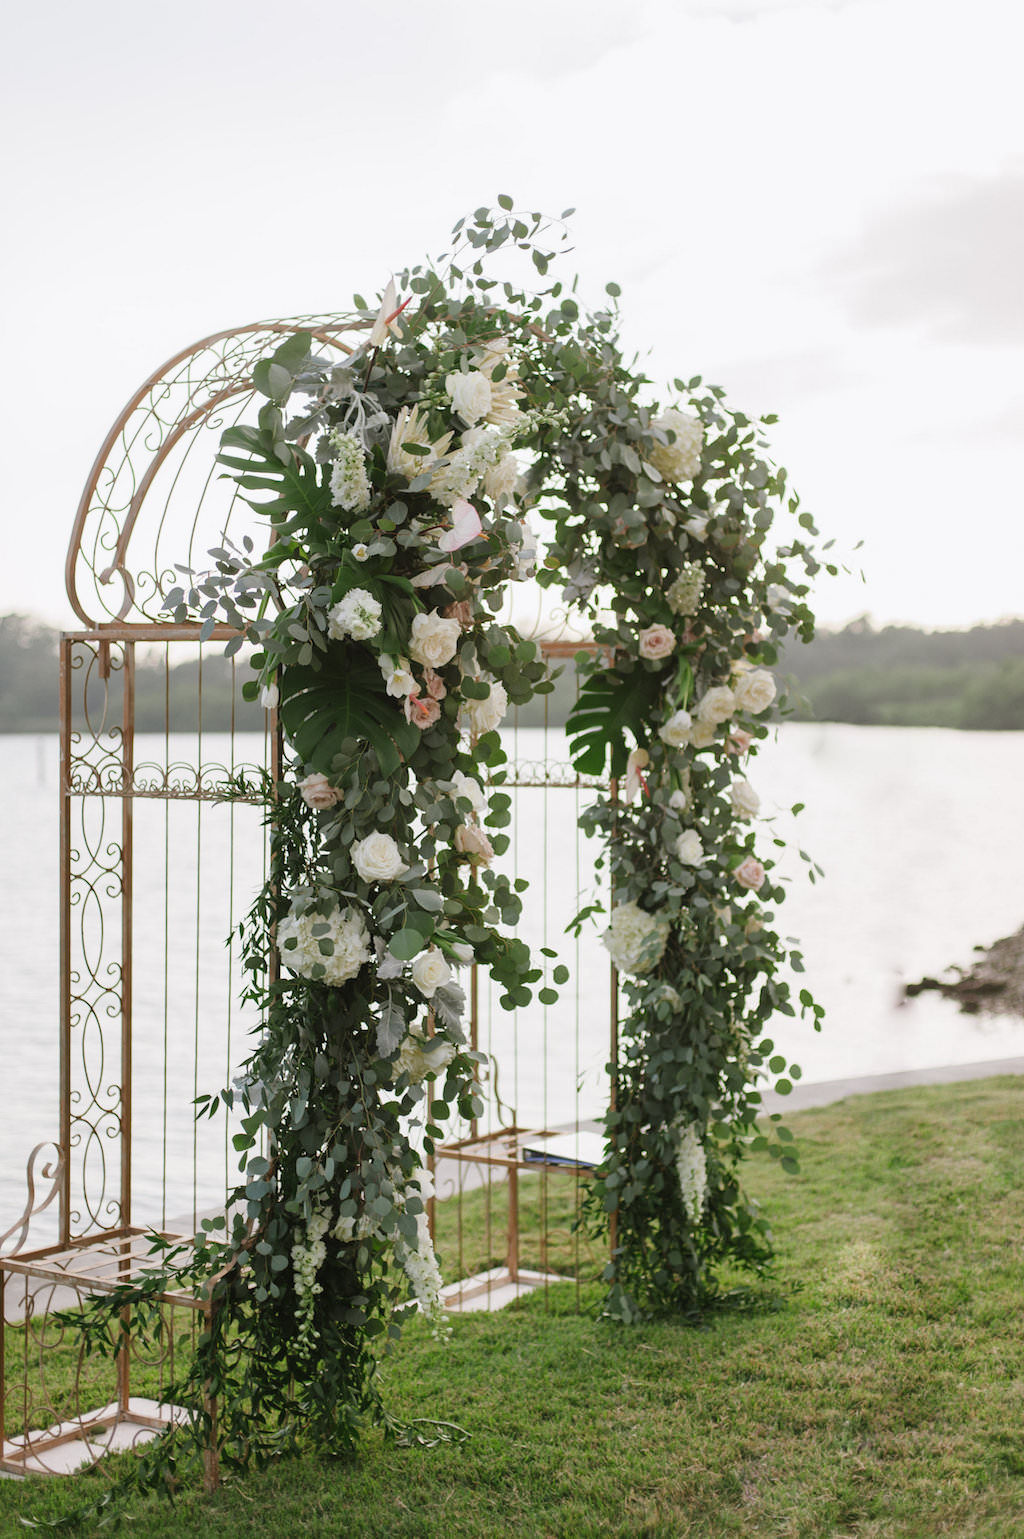 Organic Greenery Inspired Neutral Pastel Wedding Ceremony Arch for Outdoor Waterfront Wedding